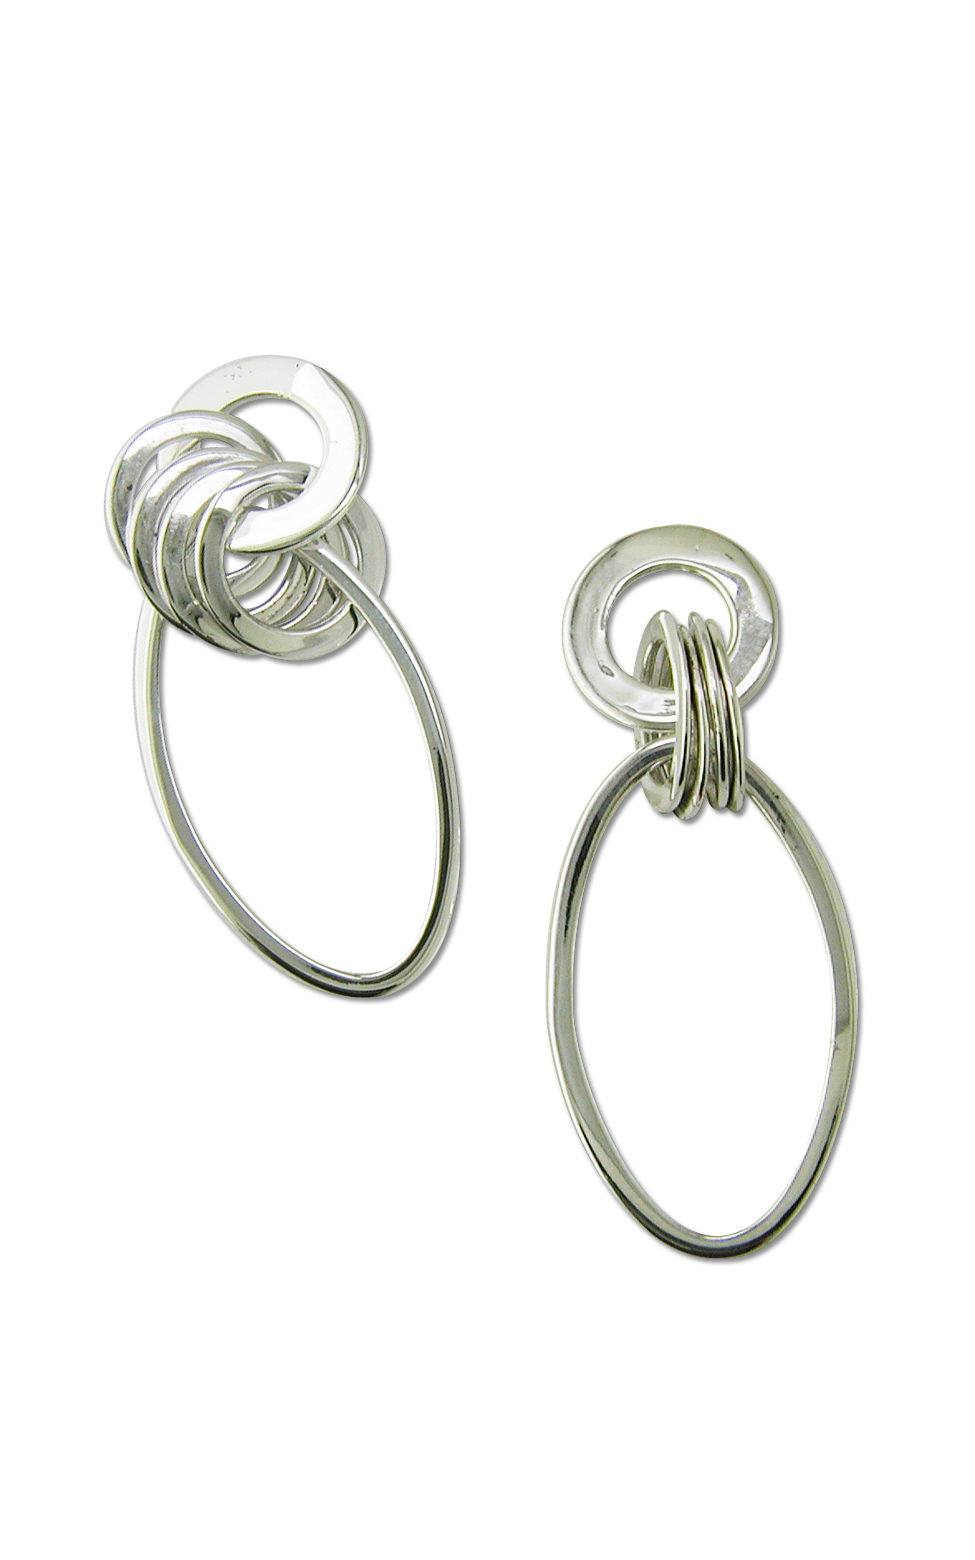 Zina Contemporary Earrings B361 product image